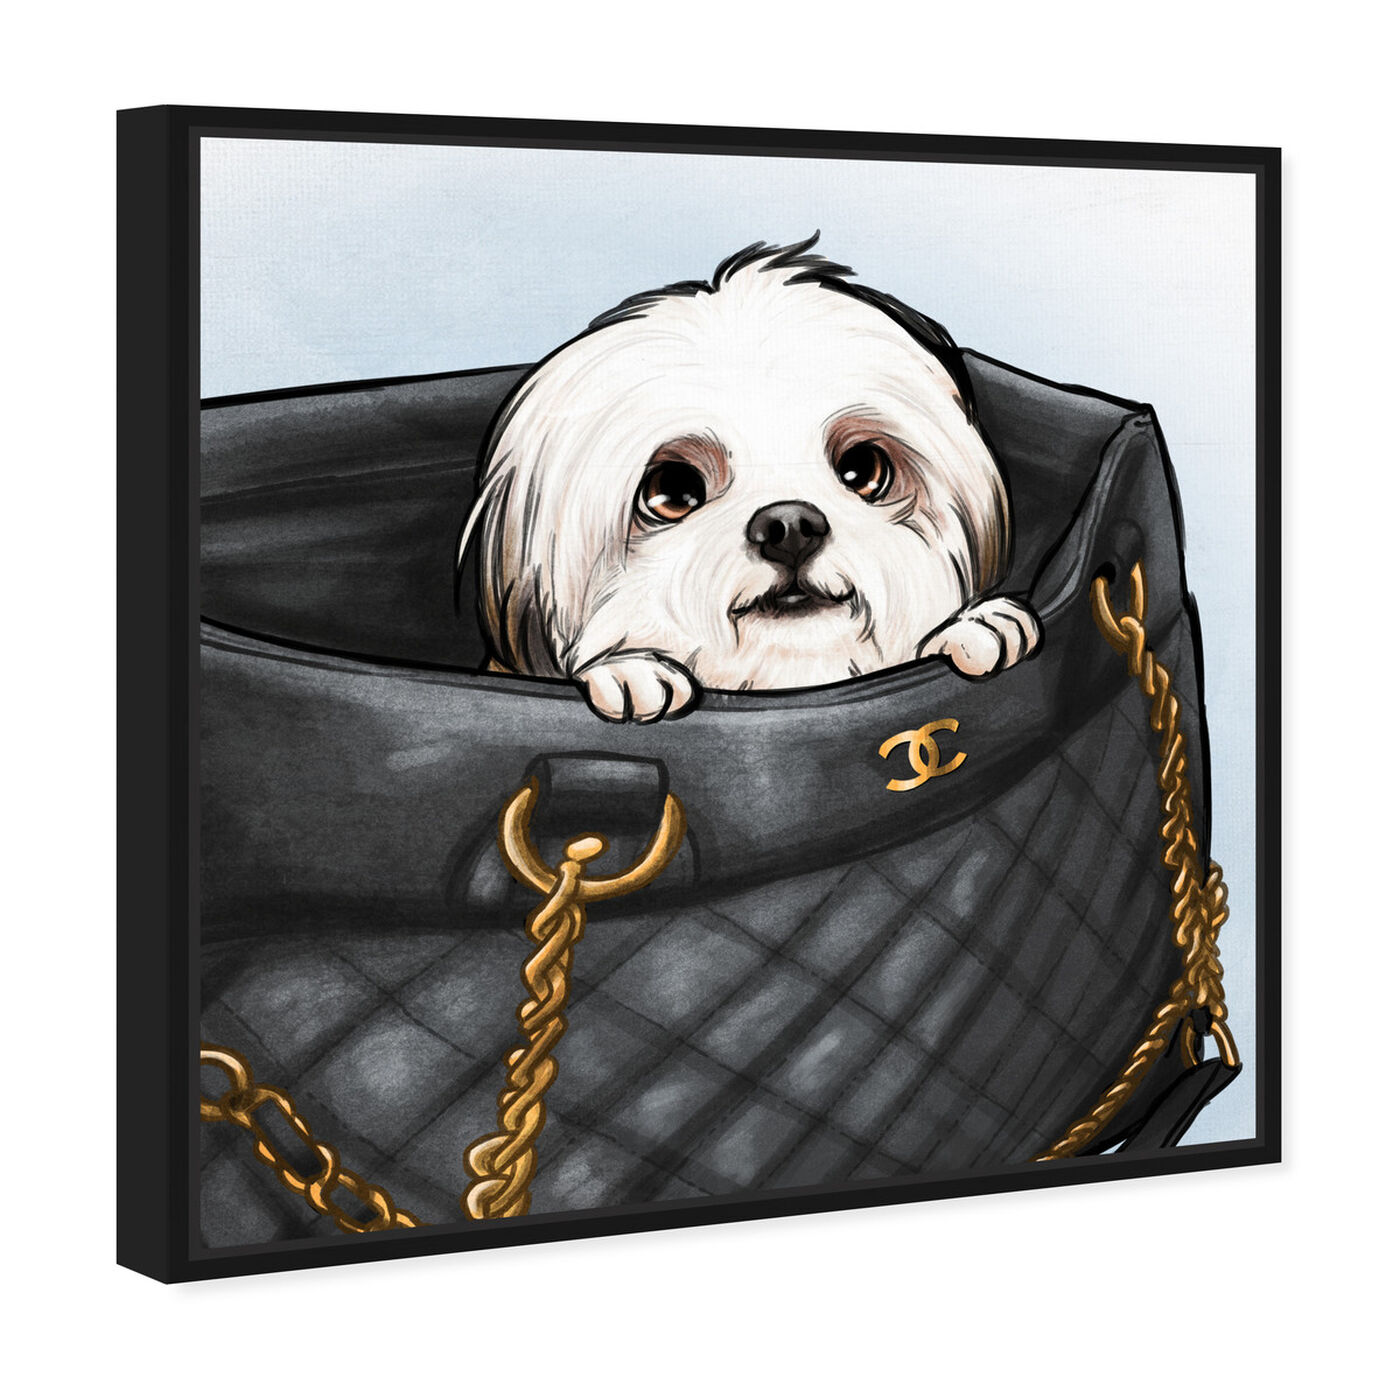 Angled view of Peek a Boo Shih Tzu featuring fashion and glam and handbags art.